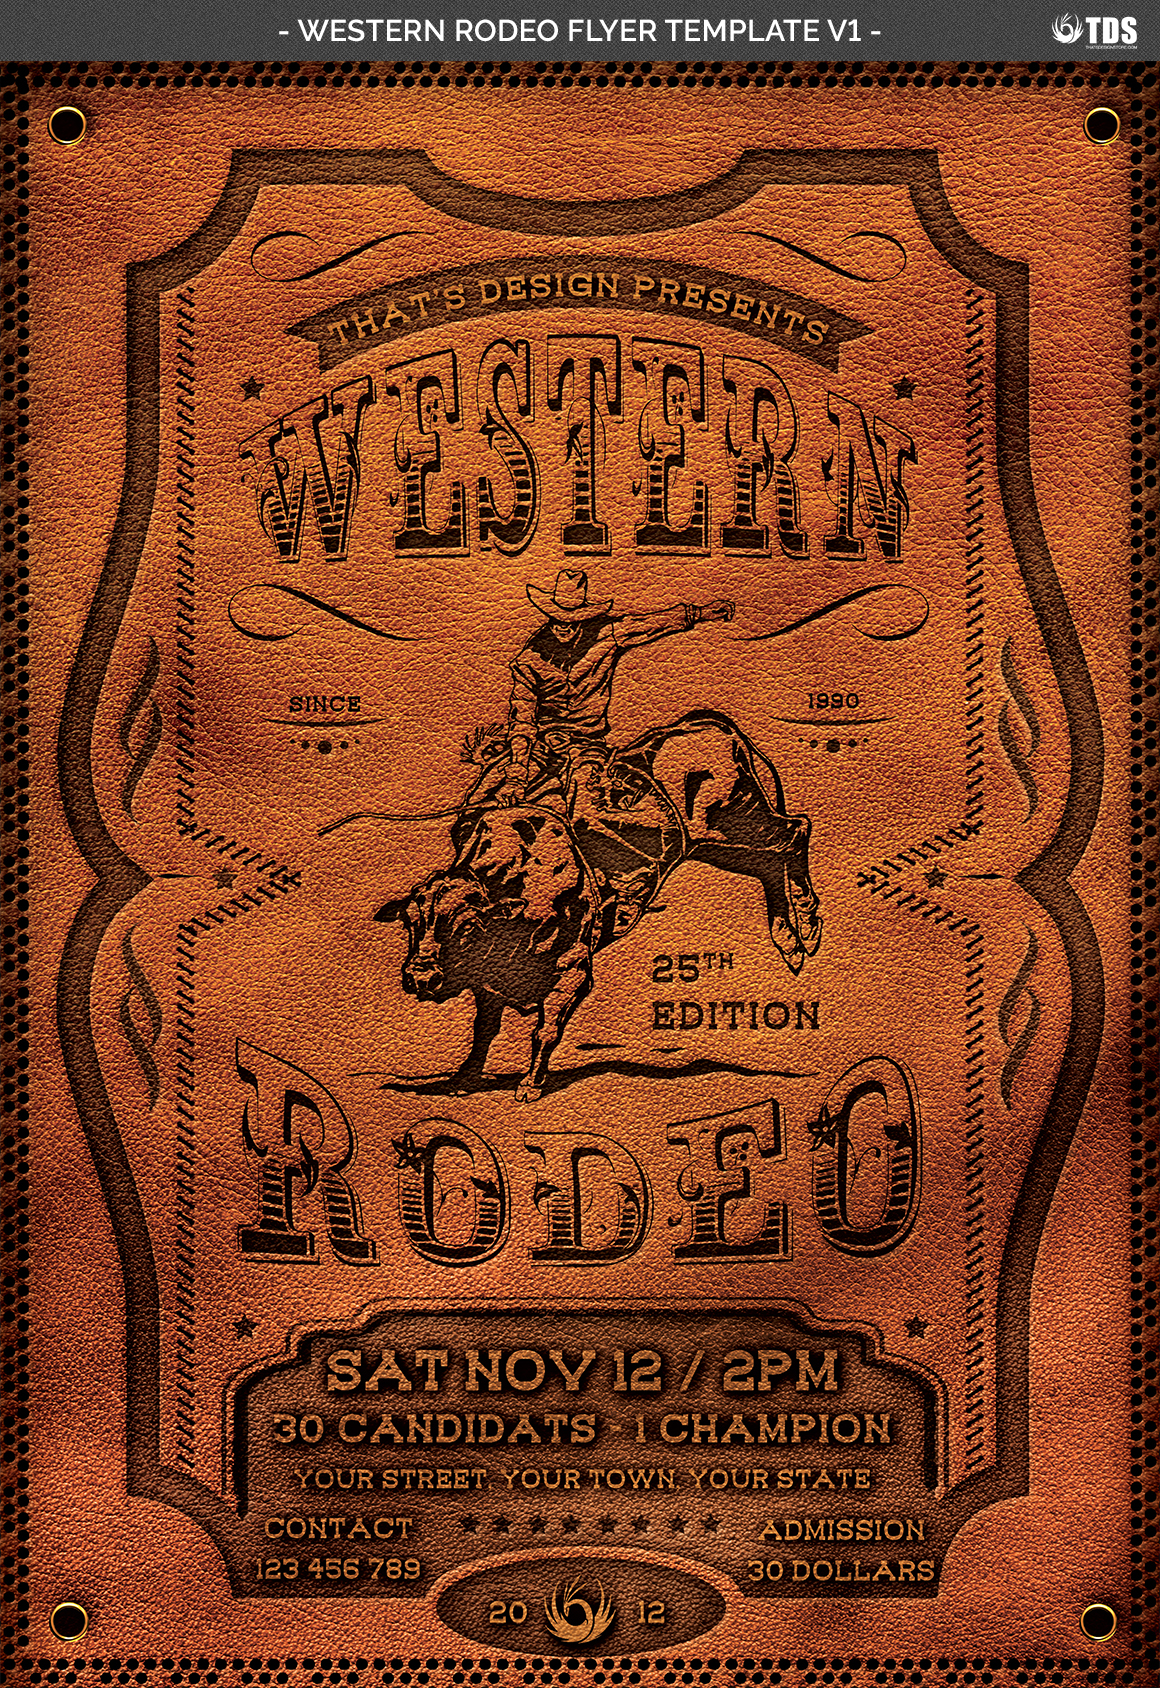 Western Rodeo Flyer Template V1 example image 4